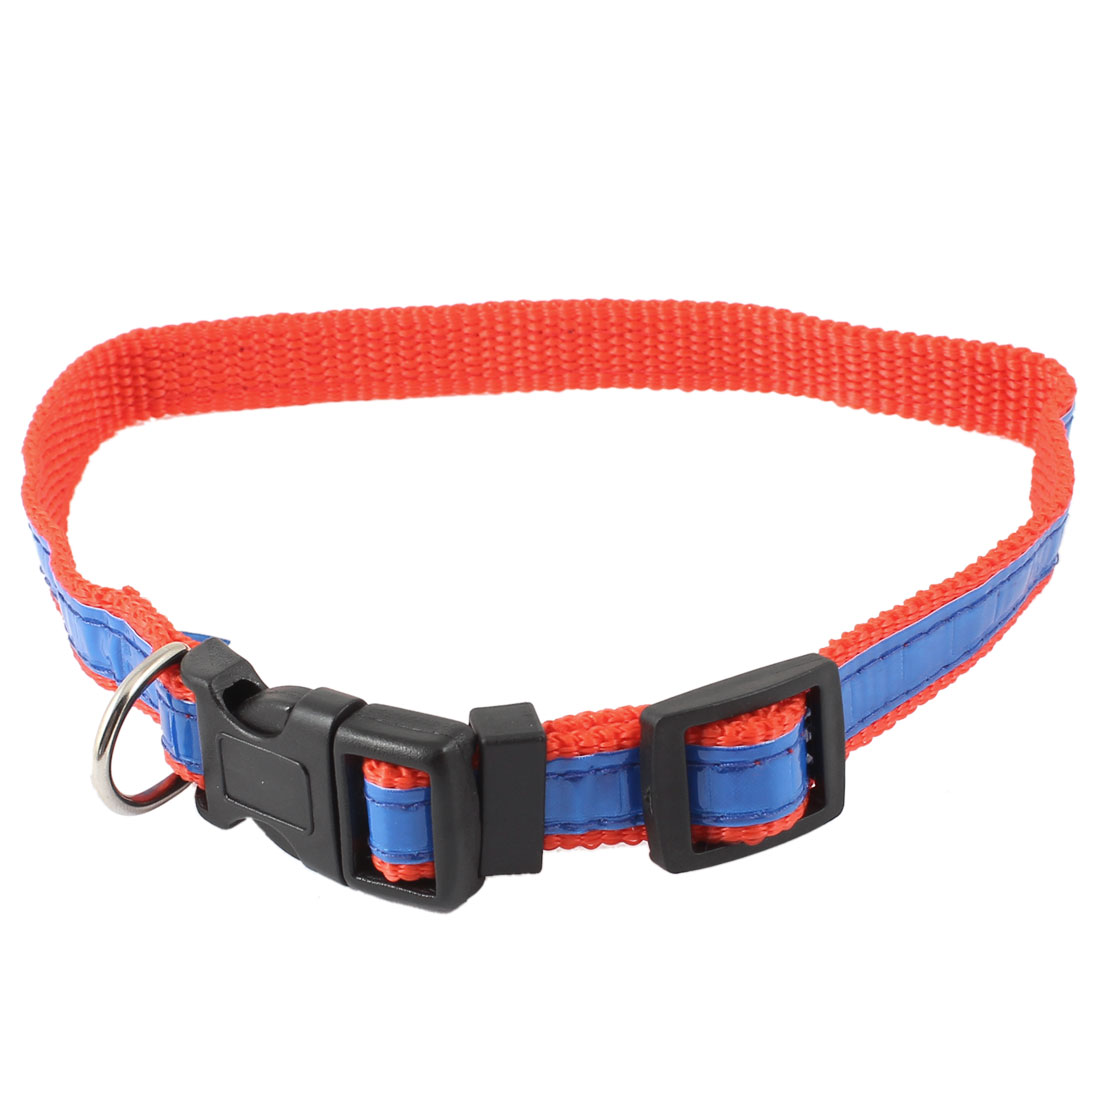 Release Buckle Night Safety Tracking Reflective Nylon Adjustable Belt Collar Blue Red for Pet Cat Dog Doggy